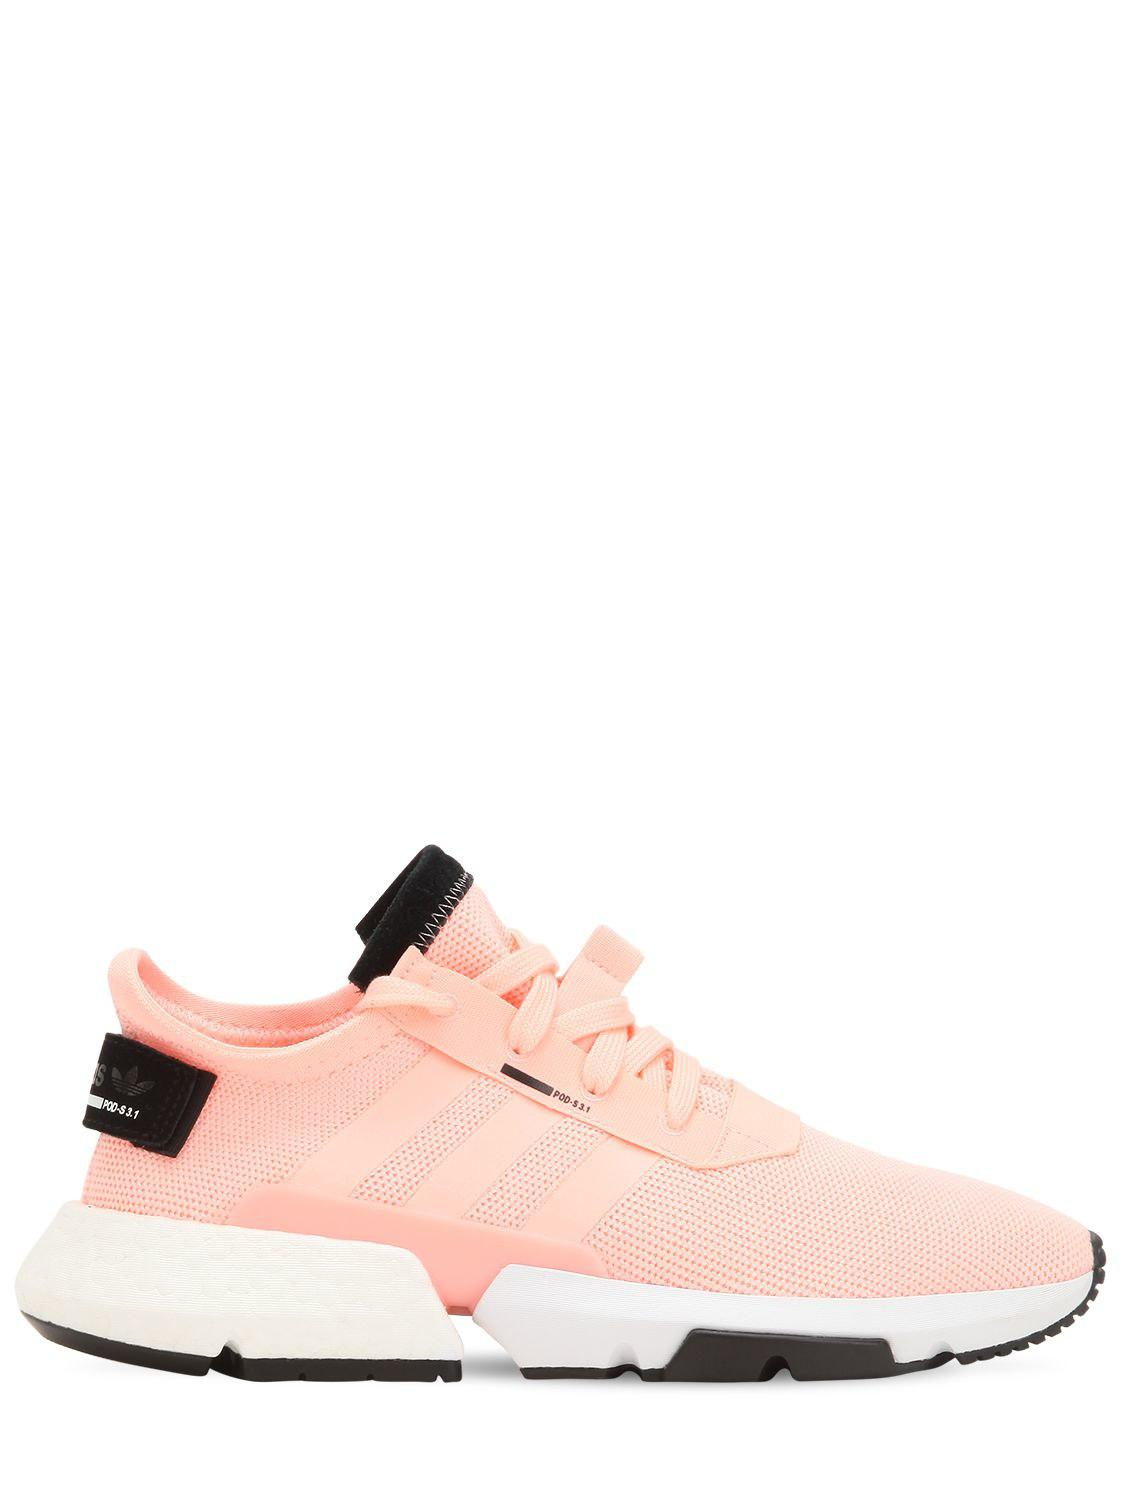 new product 25652 989c7 adidas Originals. Womens Pink Pod-s3.1 Sneakers